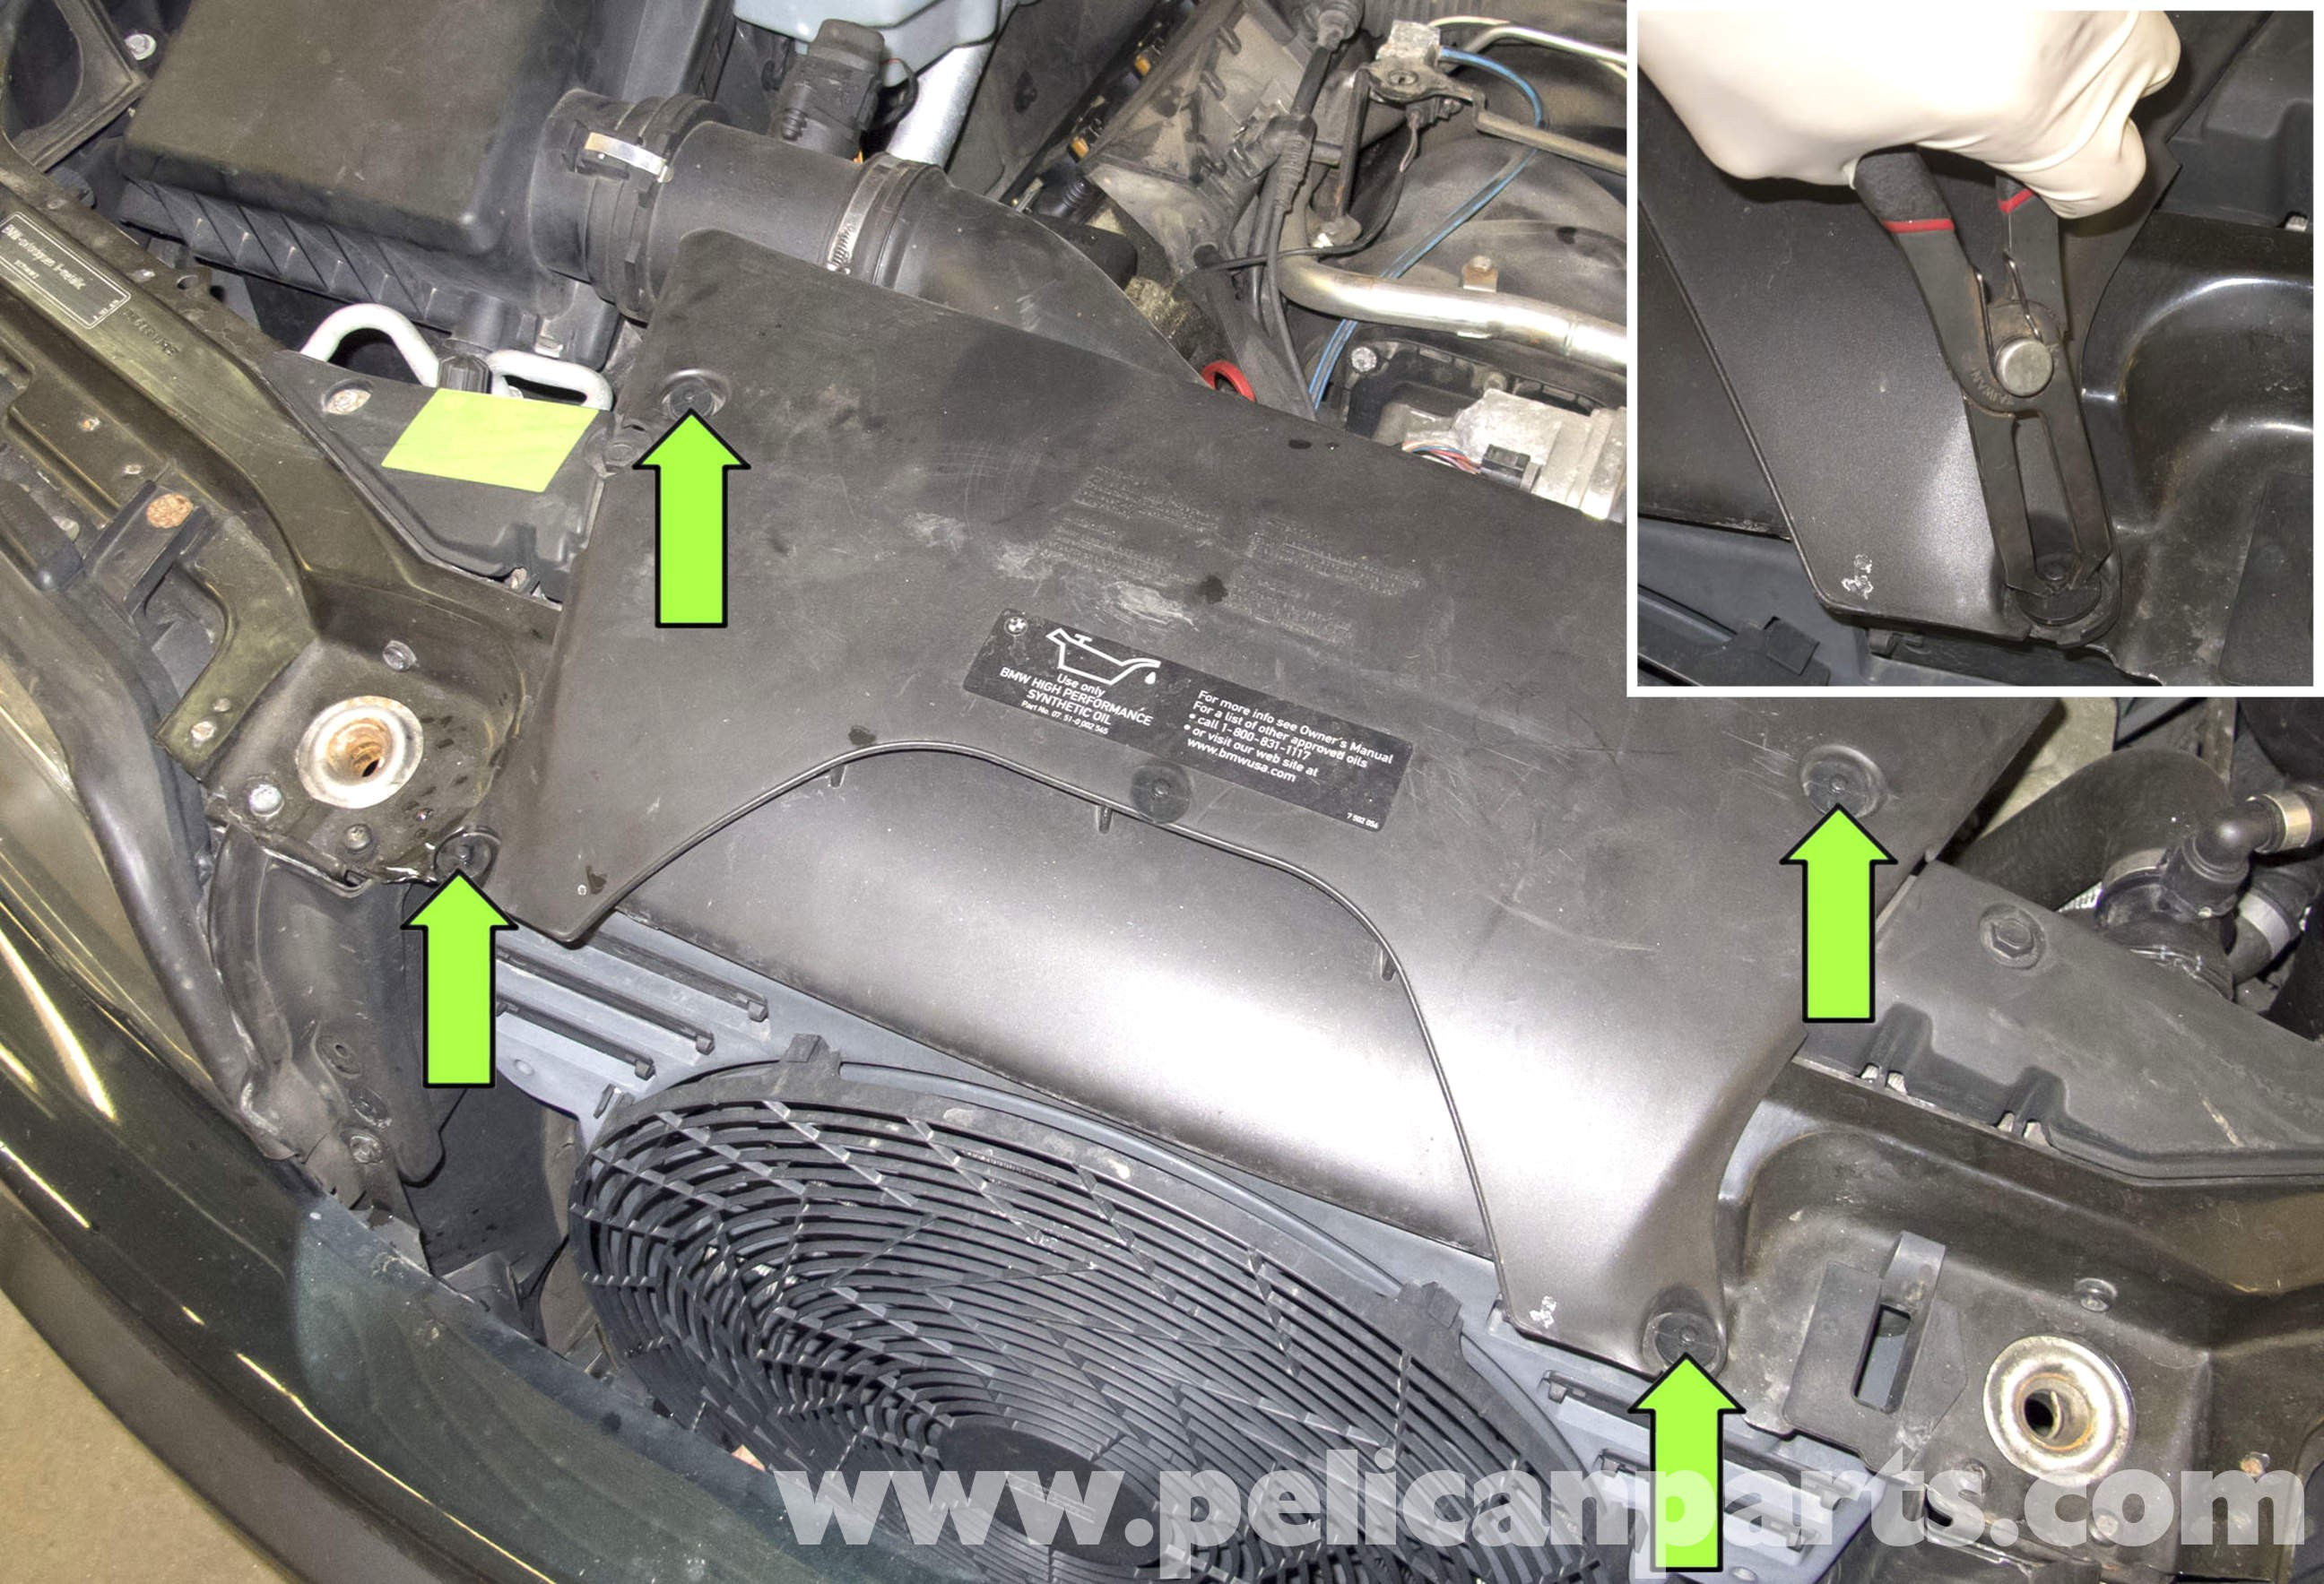 2005 Bmw X5 Engine Diagram Bmw X5 Engine Cooling Fan Replacement E53 2000 2006 Of 2005 Bmw X5 Engine Diagram